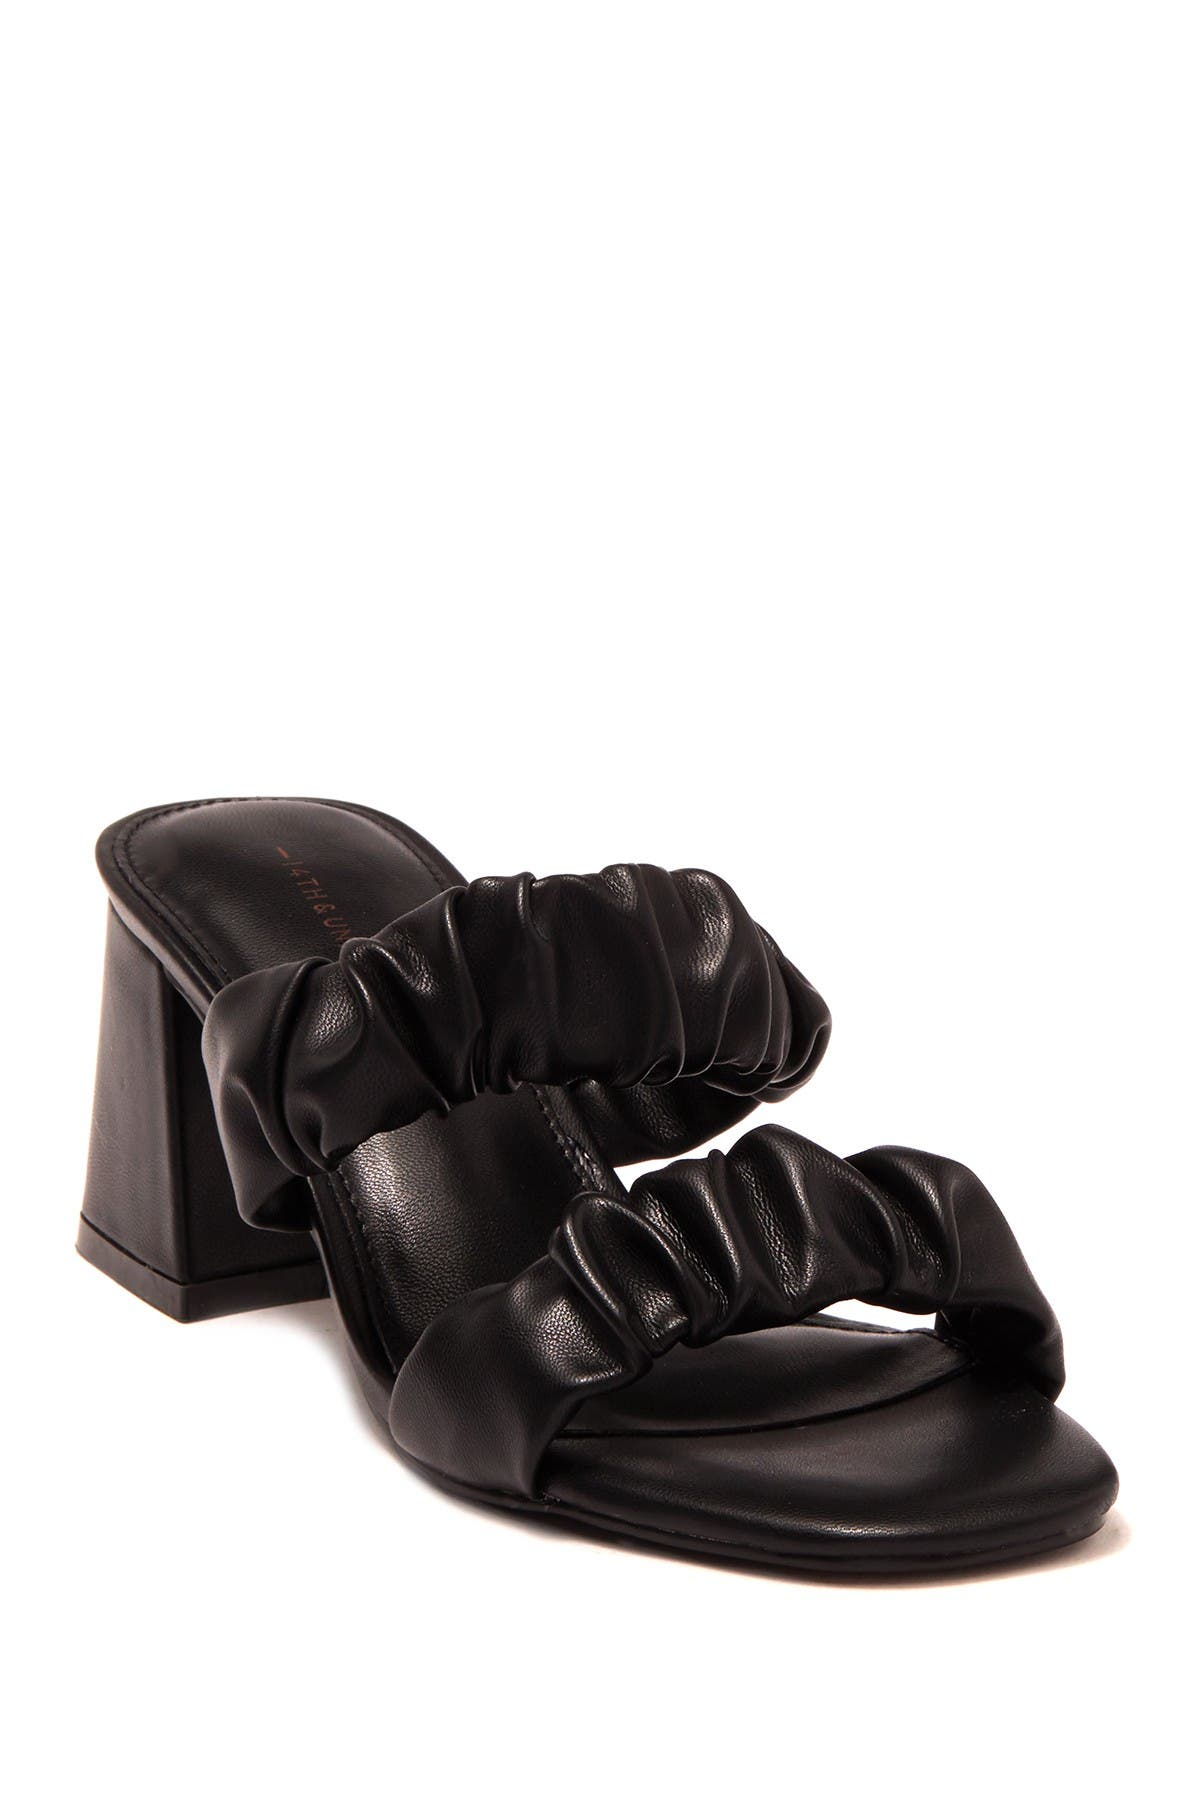 Image of 14th & Union Zandal Scrunch Block Heel Sandal